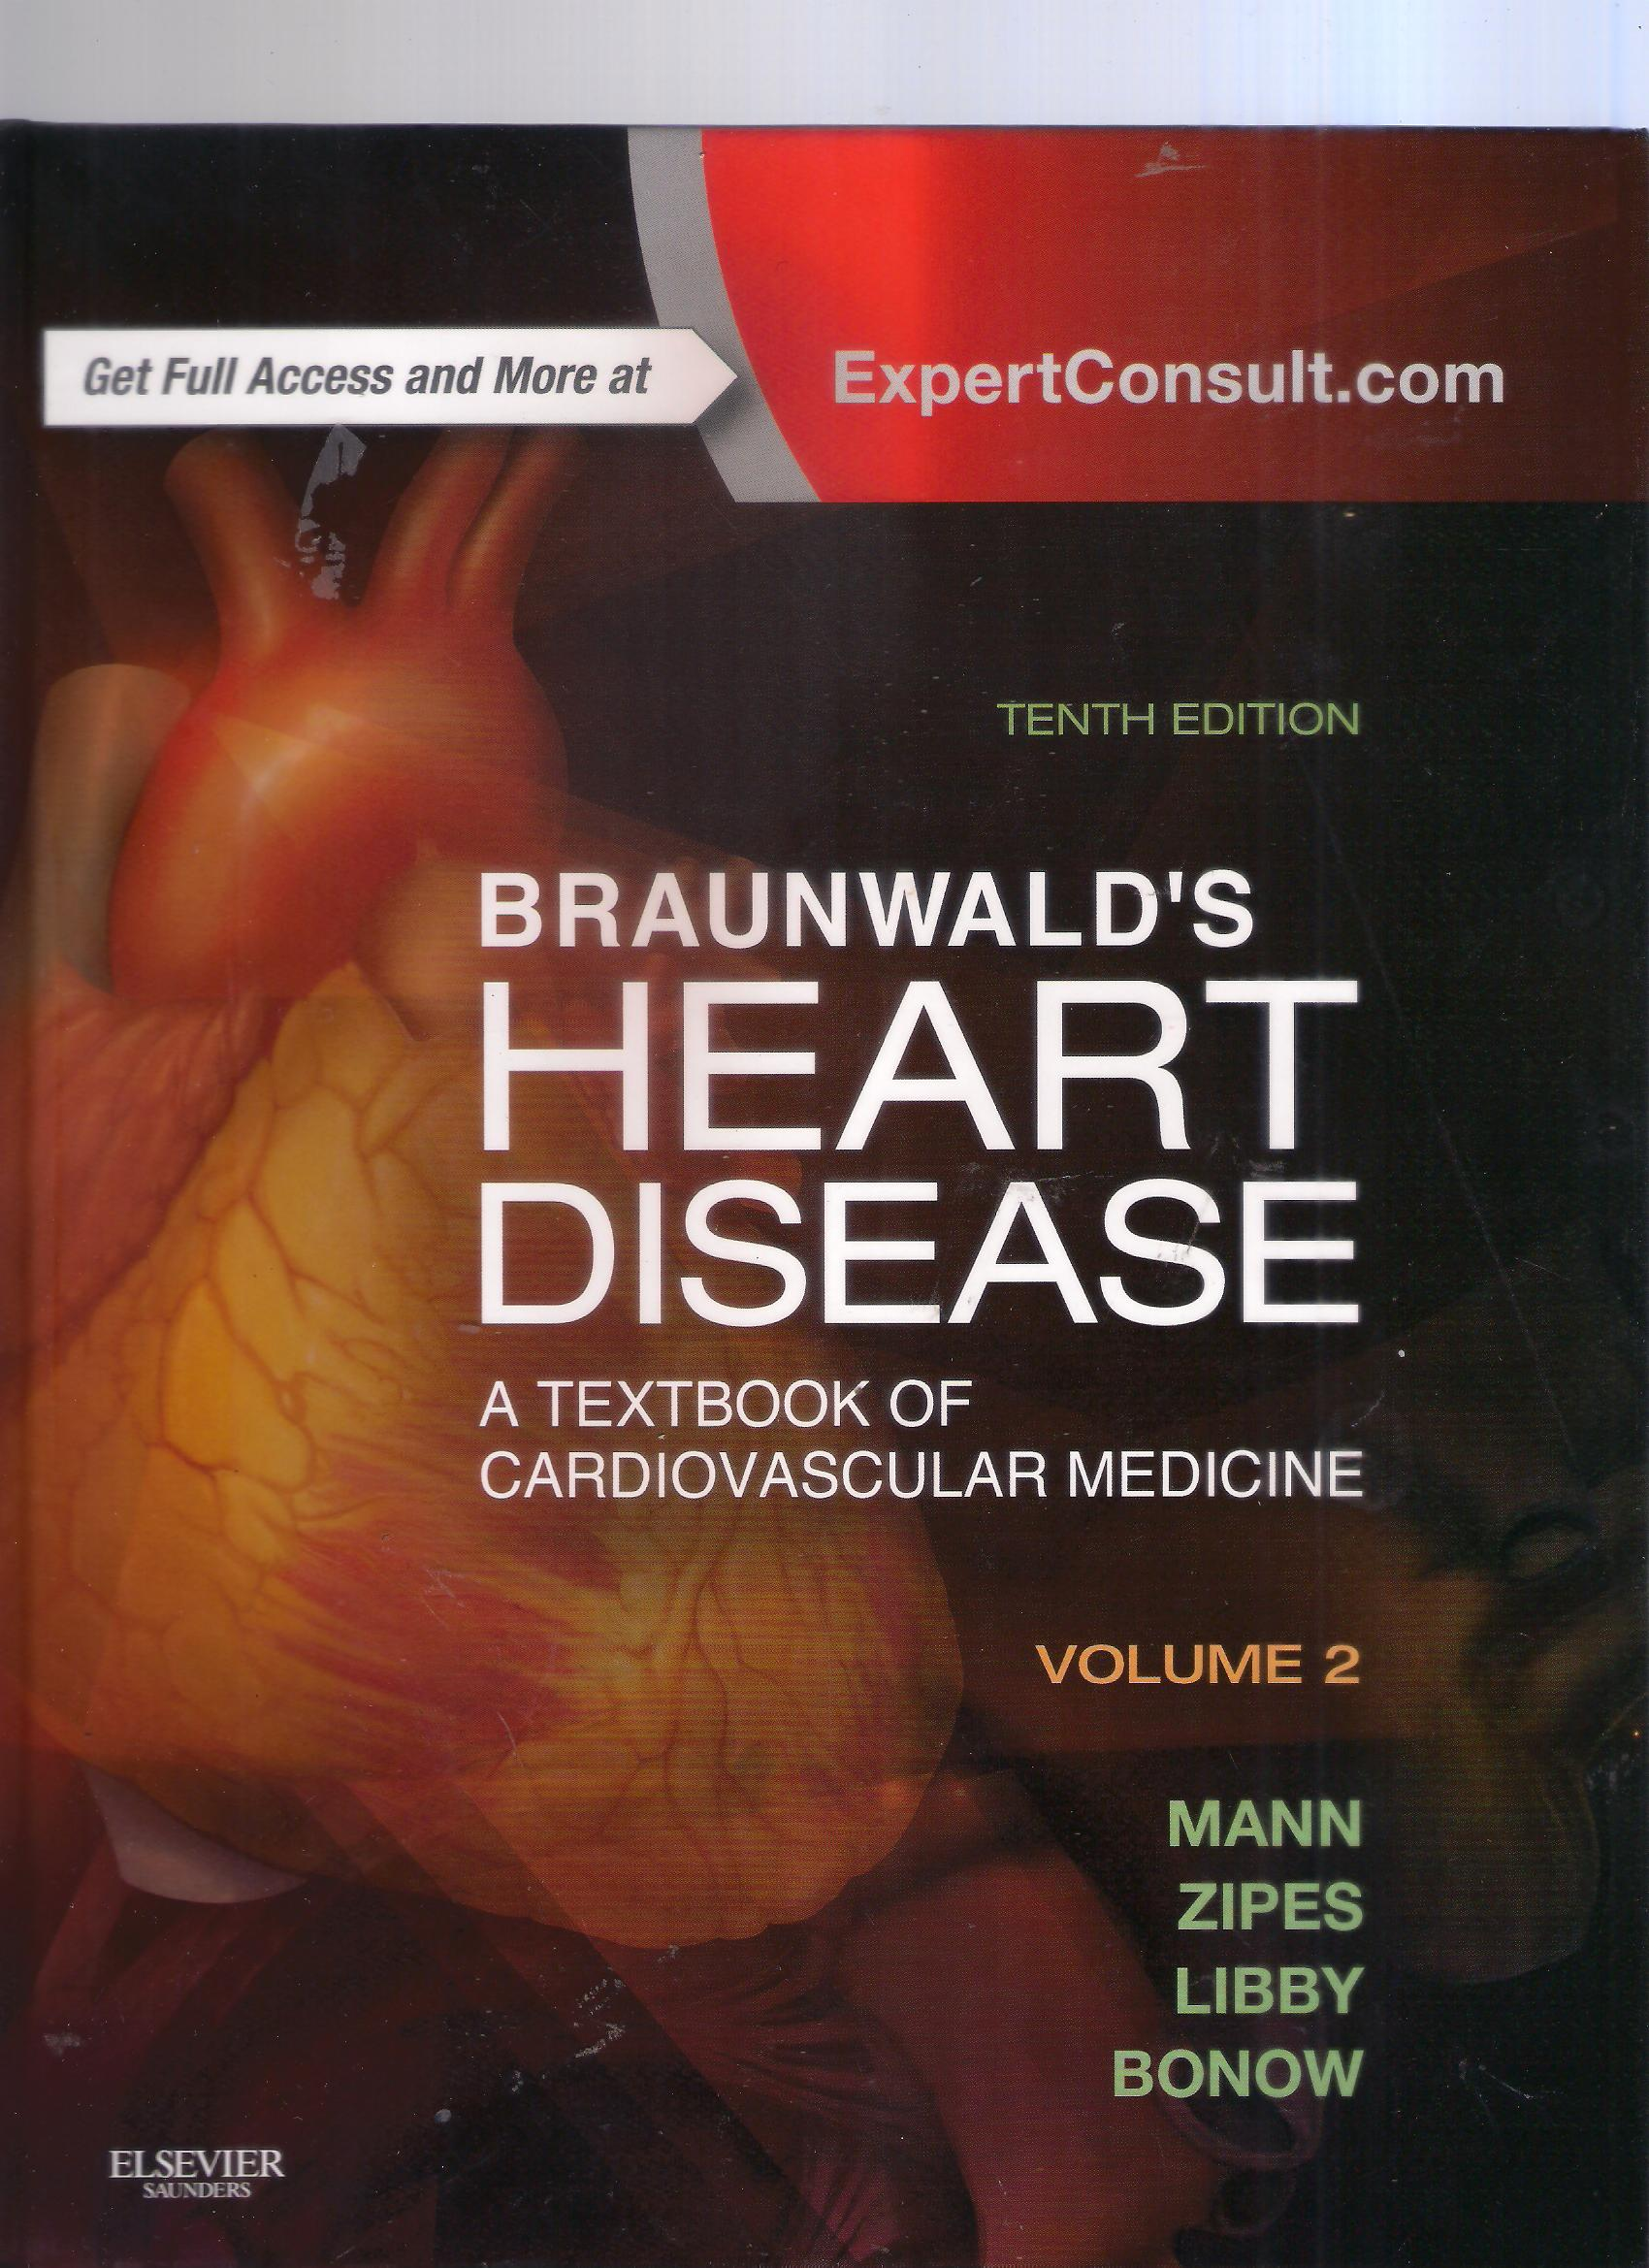 Braunwald's Heart Disease: a textbook of cardiovascular medicine volume 2